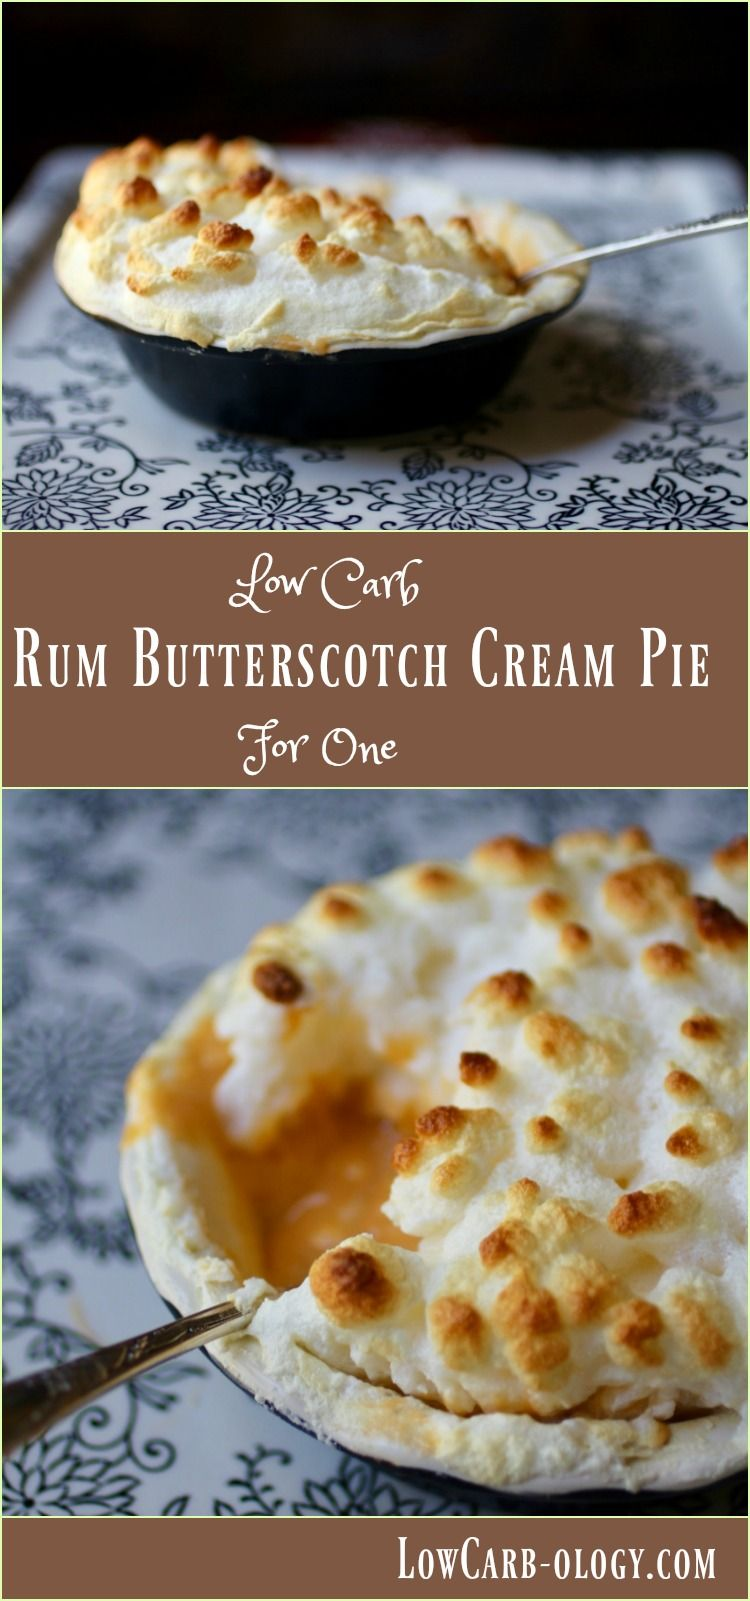 This Rum Butterscotch Cream Pie recipe is low carb and sugar free. It's so creamy - Atkins friendly, too. From Lowcarb-ology.com